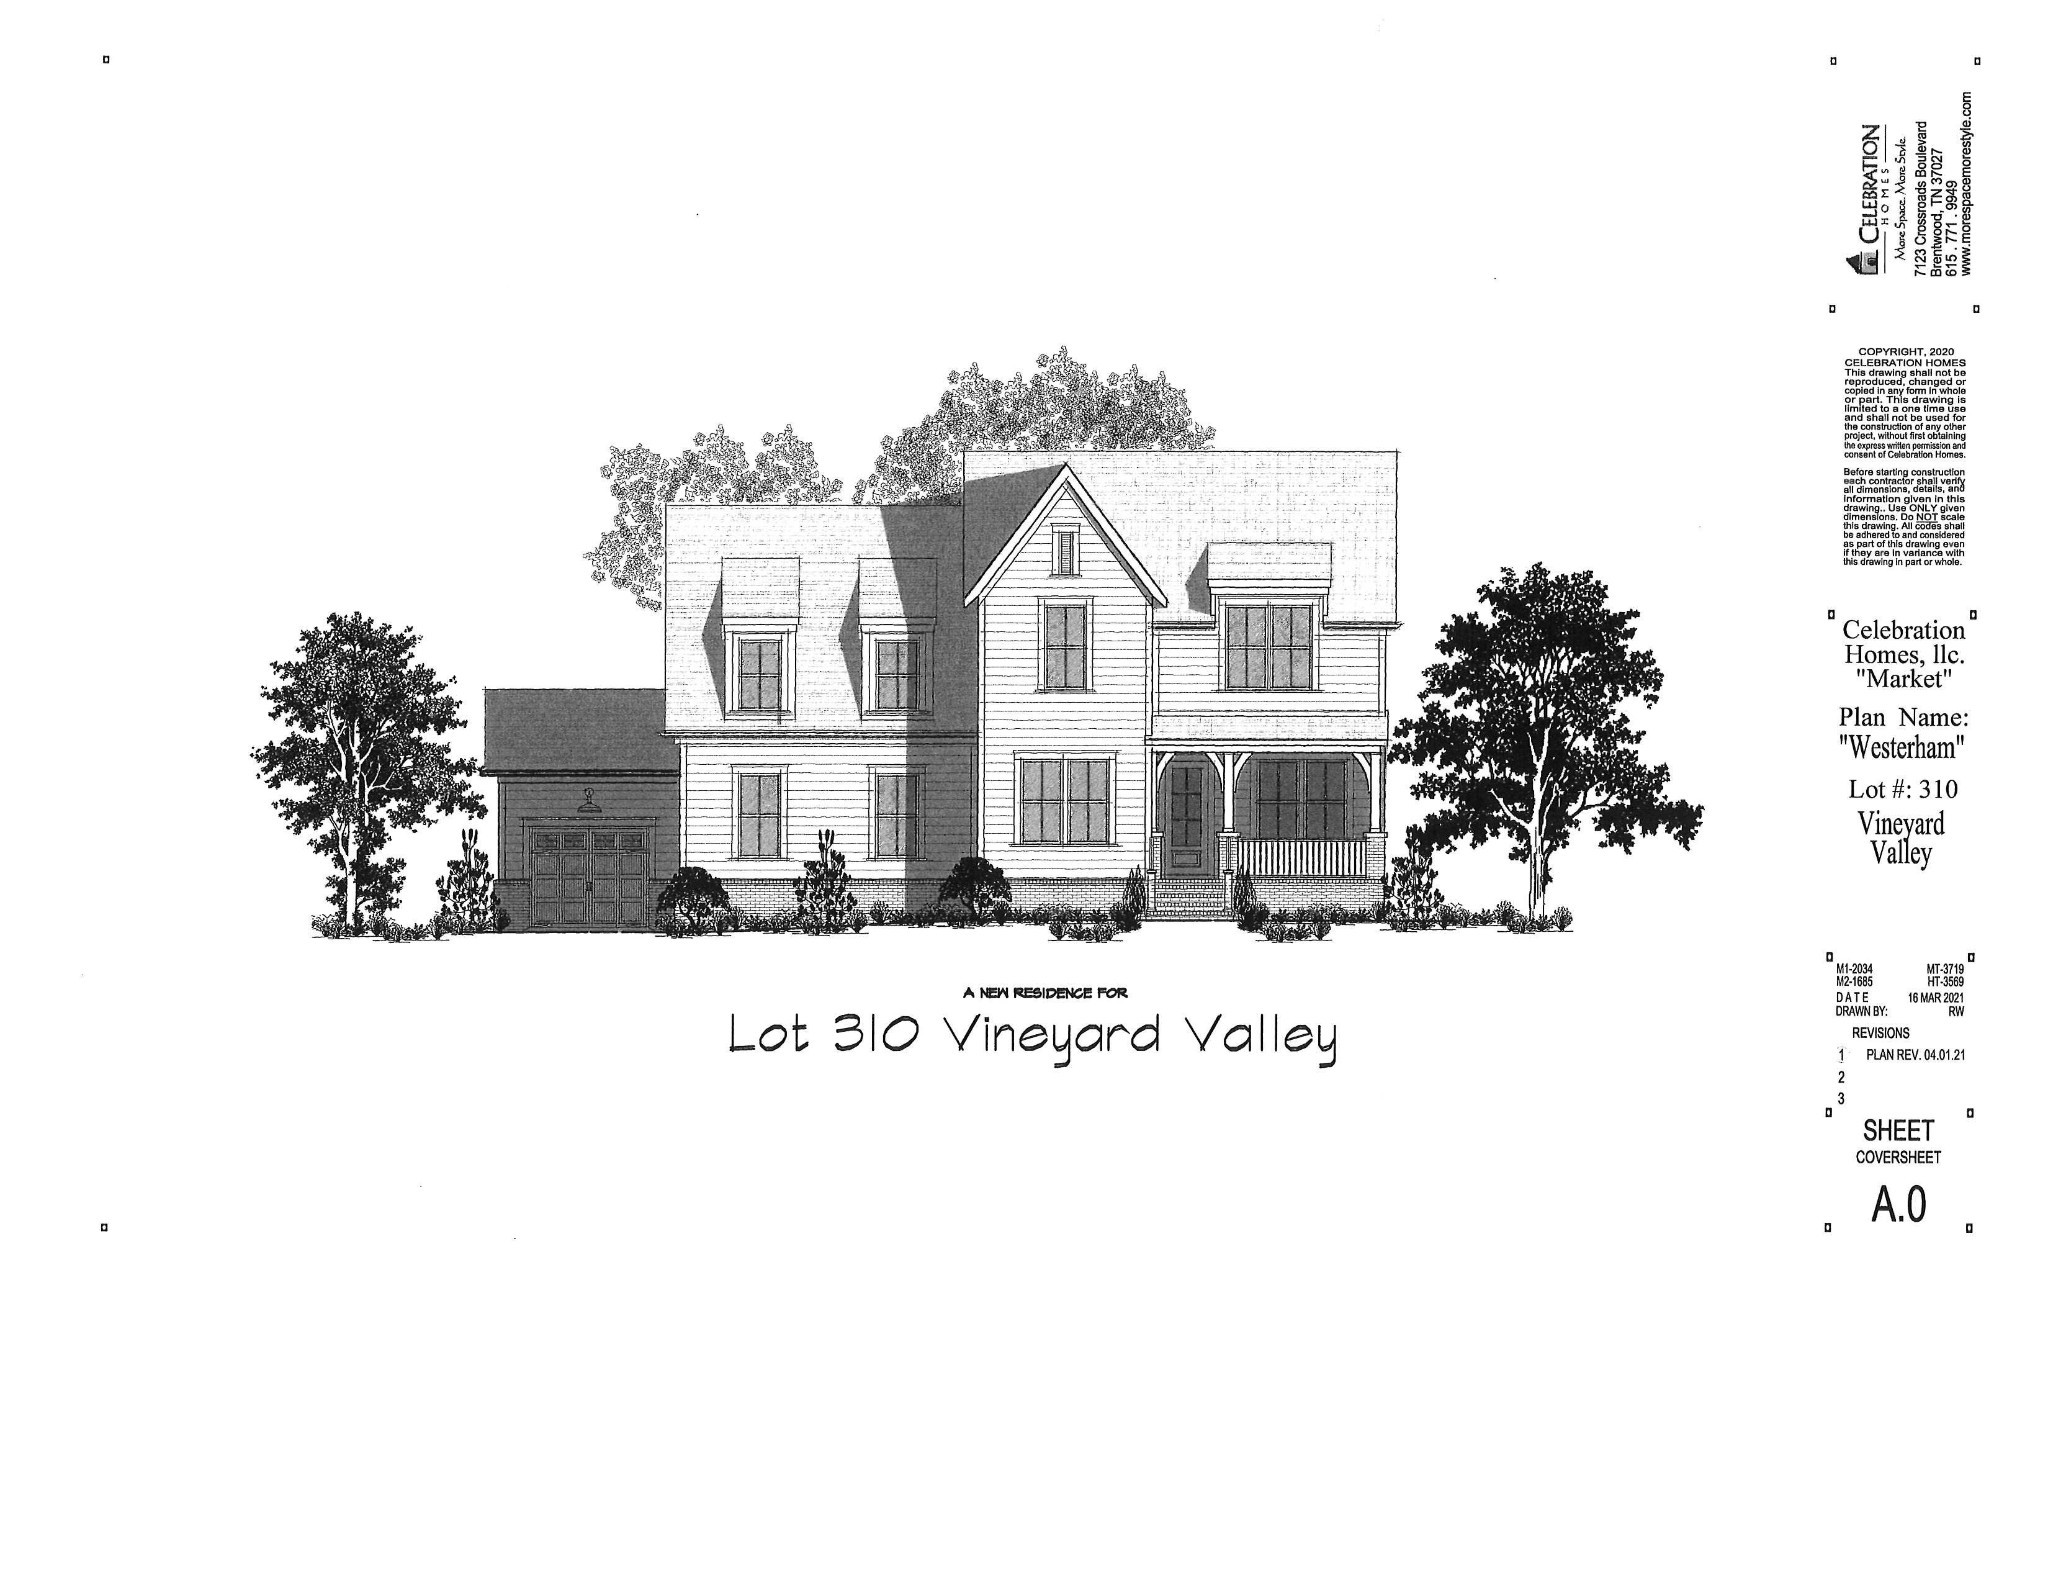 Another New Westerham plan by Celebration Homes for Beautiful Vineyard Valley, 3 Car Gar, 10' clgs down, 8' doors, quartz, Custom closets, 2 rec rms, covered deck, front porch, farmhouse sink, white cabs in kitchen, Rec rm has closet and full bath, could be huge br